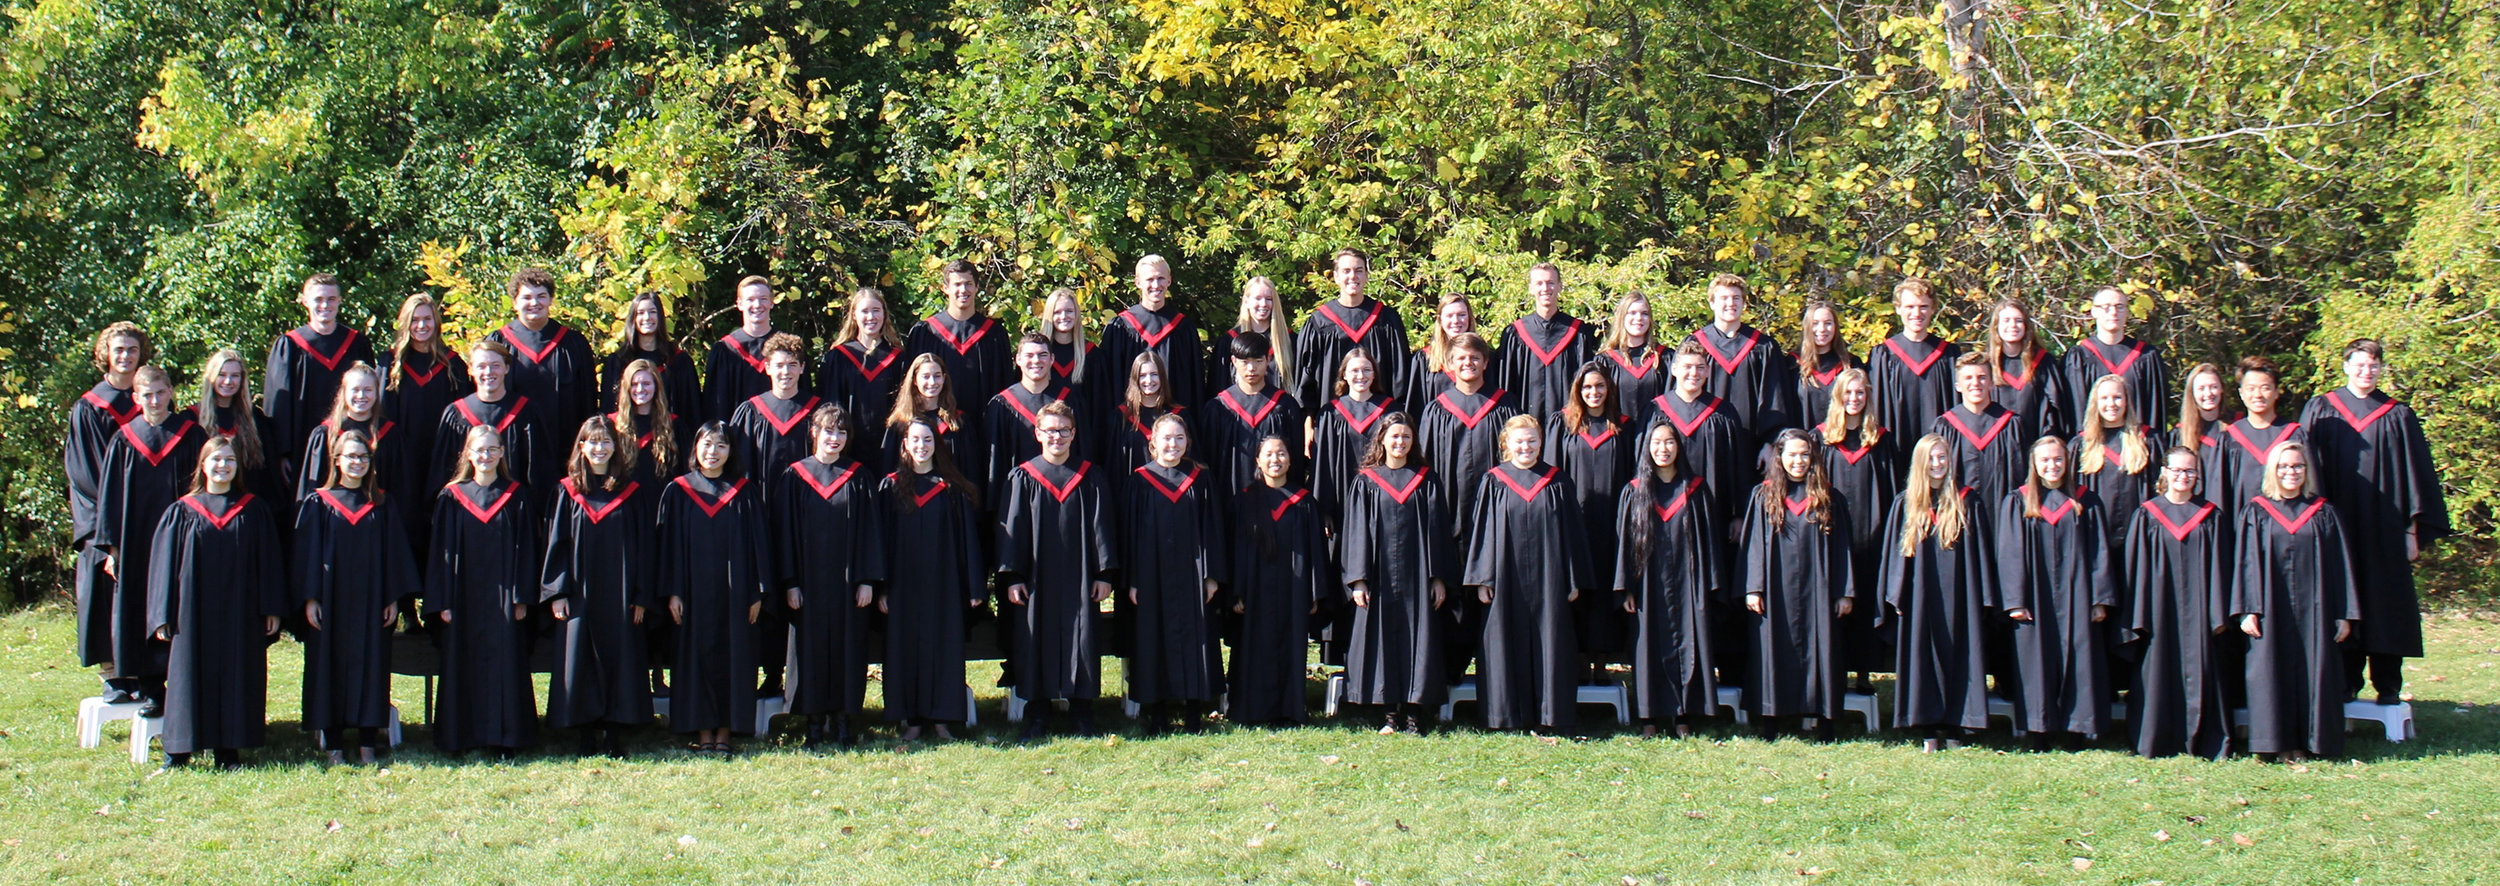 Mary Gutenkunst - Choir_crop.jpg